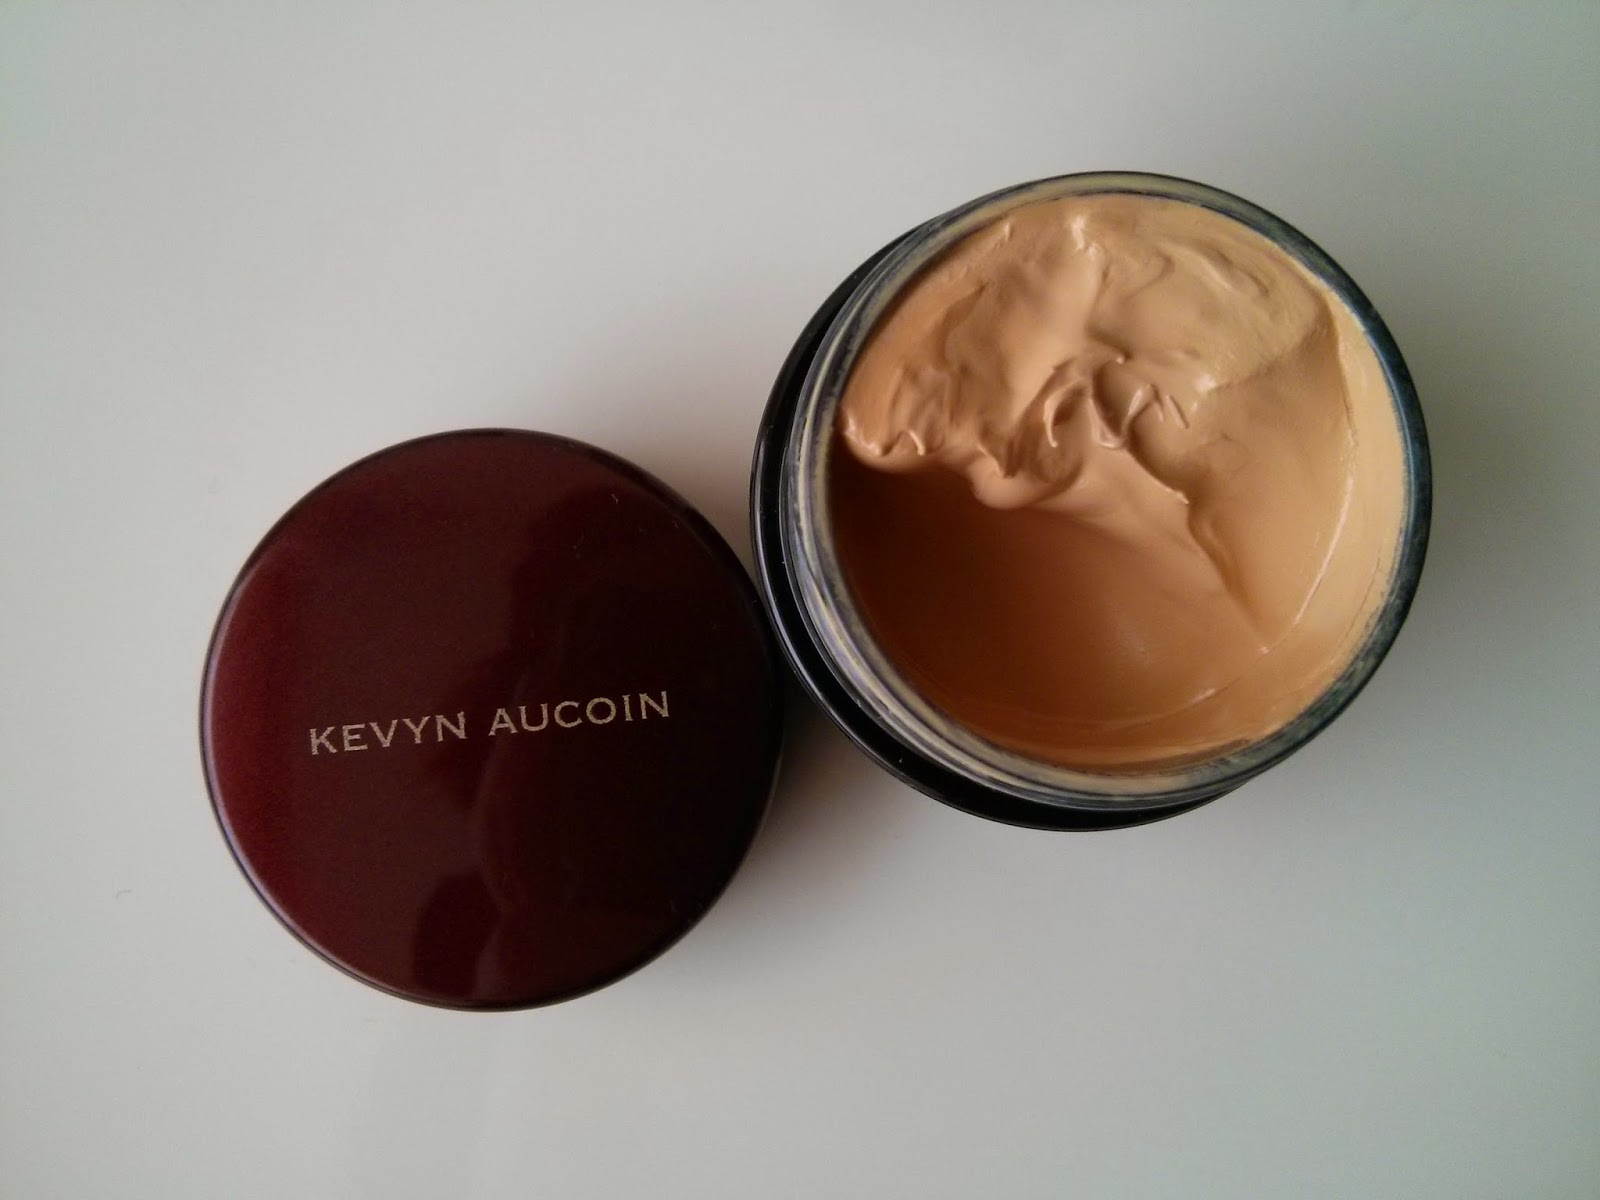 VipandSmart Beauty reviews KAucoin